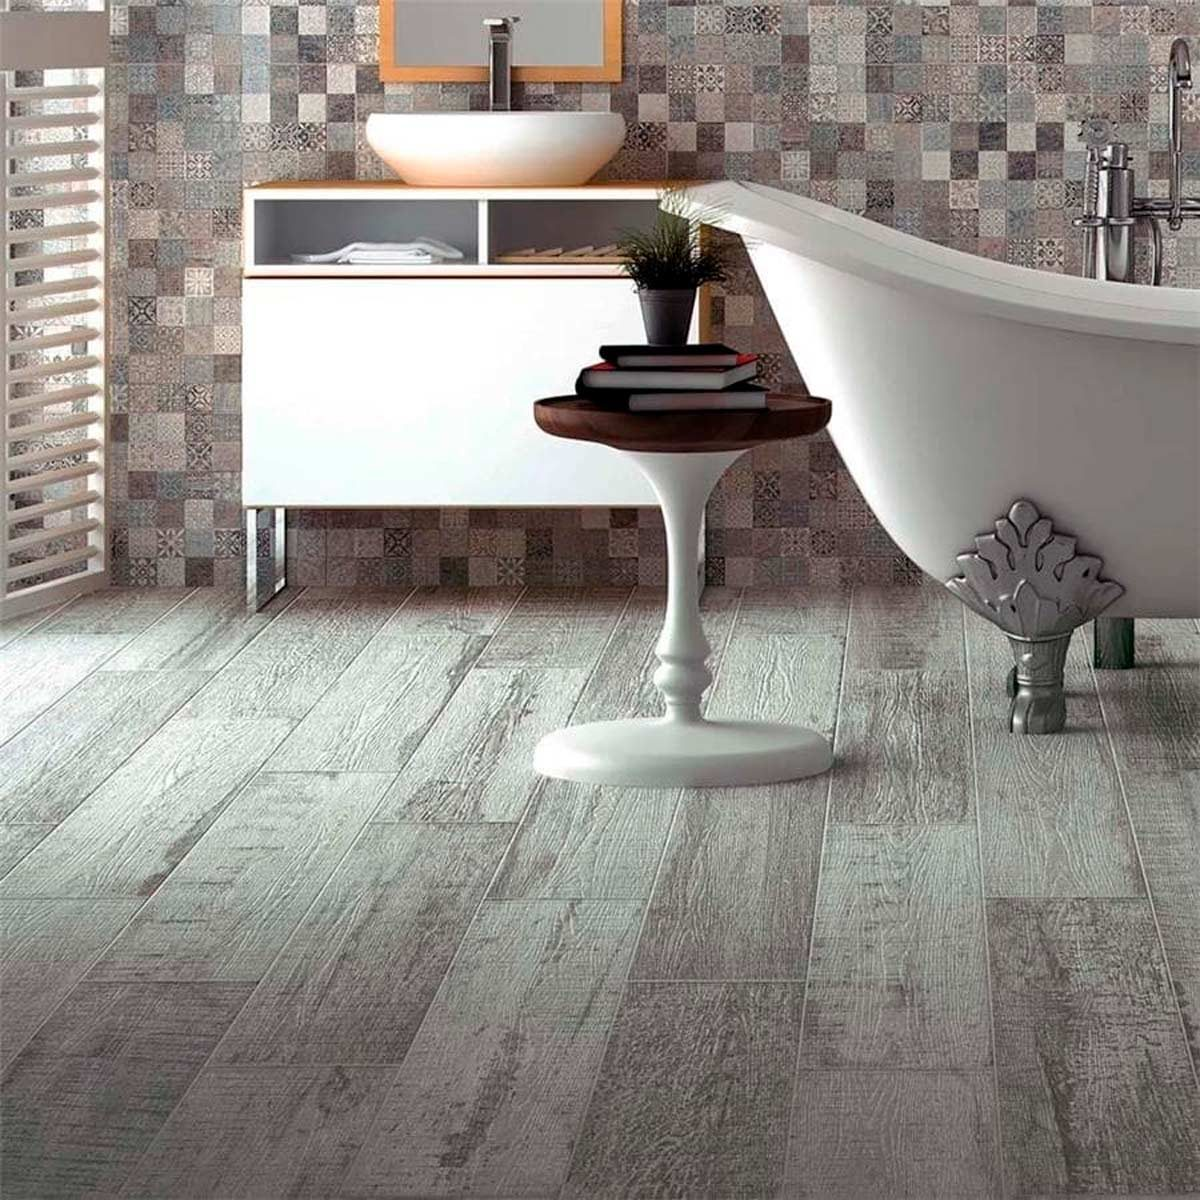 Wood Looking Tile Bathroom The Top 10 Flooring Trends For 2019 Family Handyman The Family